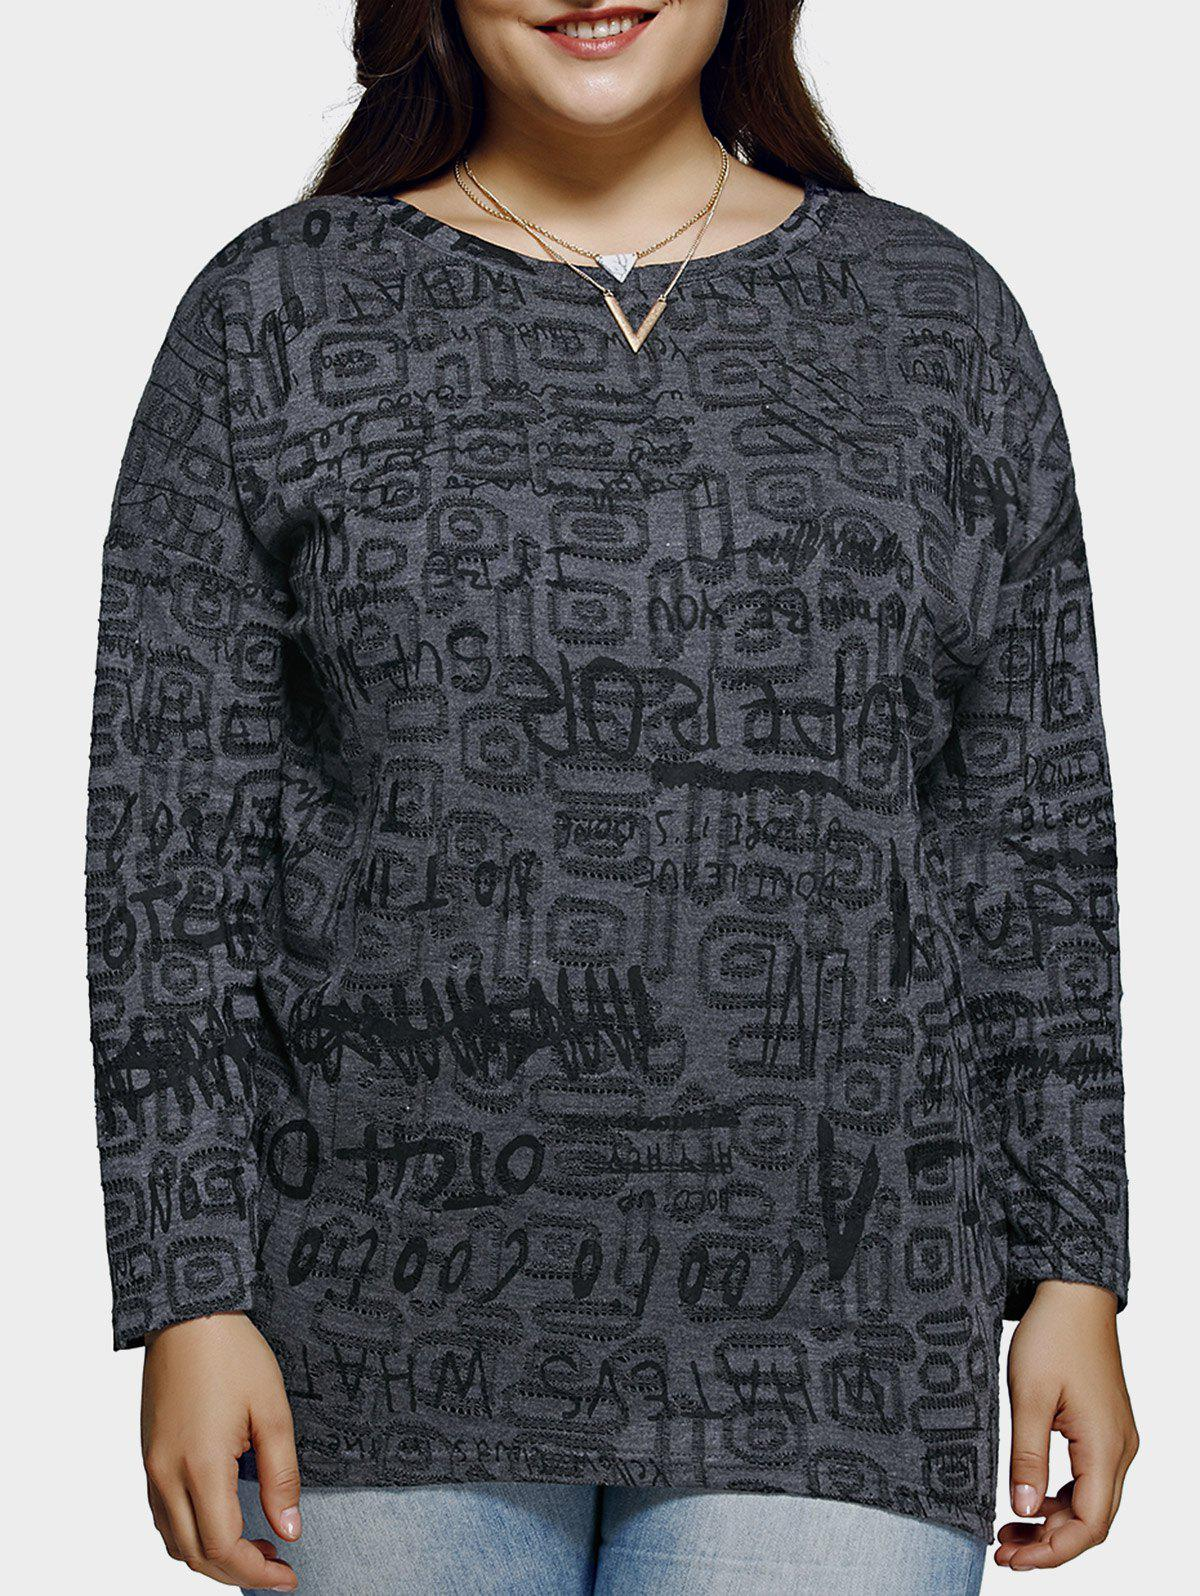 Plus Size Casual Letter Pattern Baggy Blouse - DEEP GRAY XL